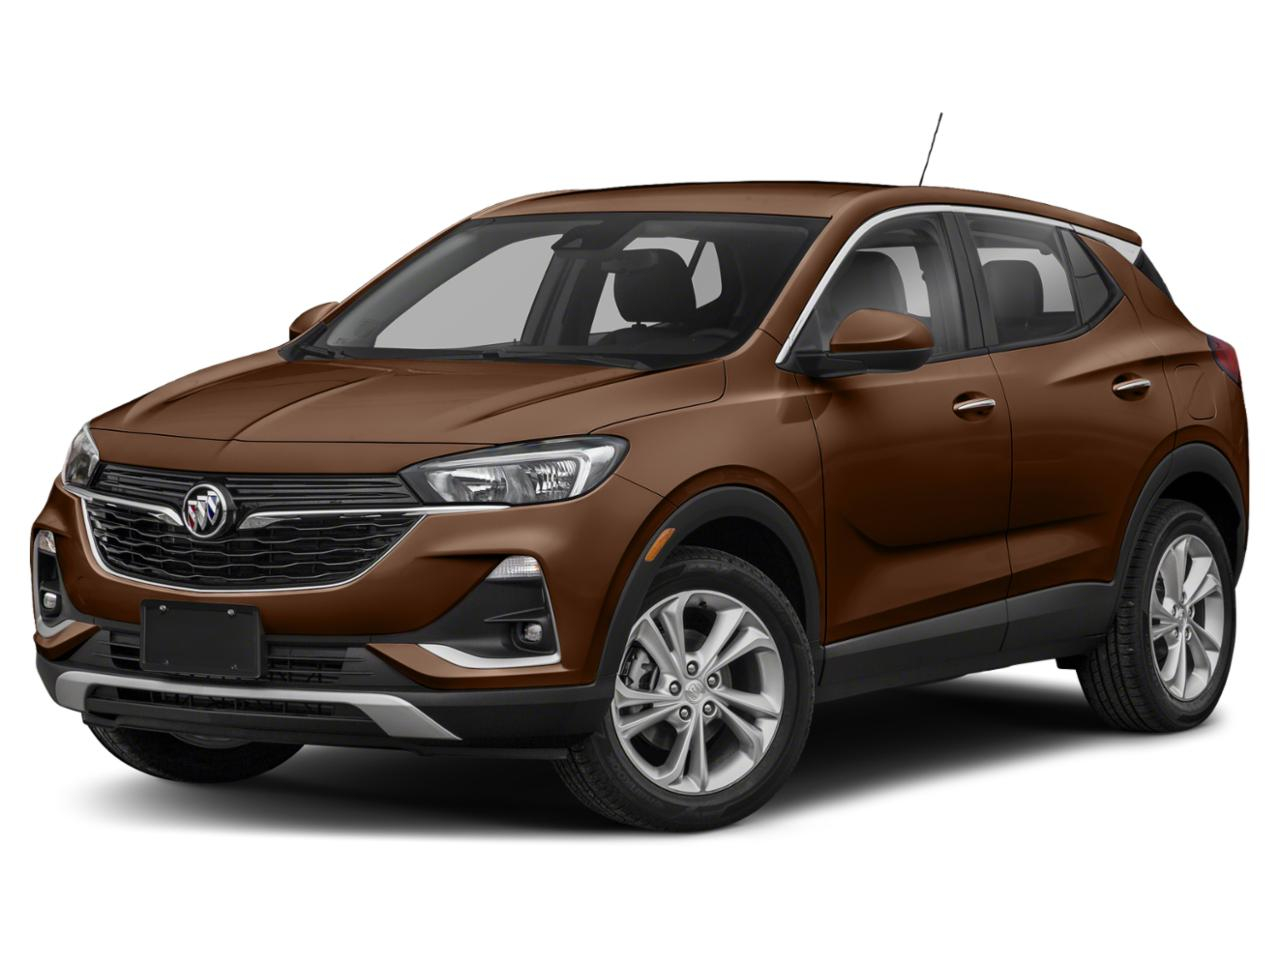 New 2020 Buick Encore Gx For Sale At Griffin Buick Gmc New 2022 Buick Encore Accessories, All Wheel Drive, Build